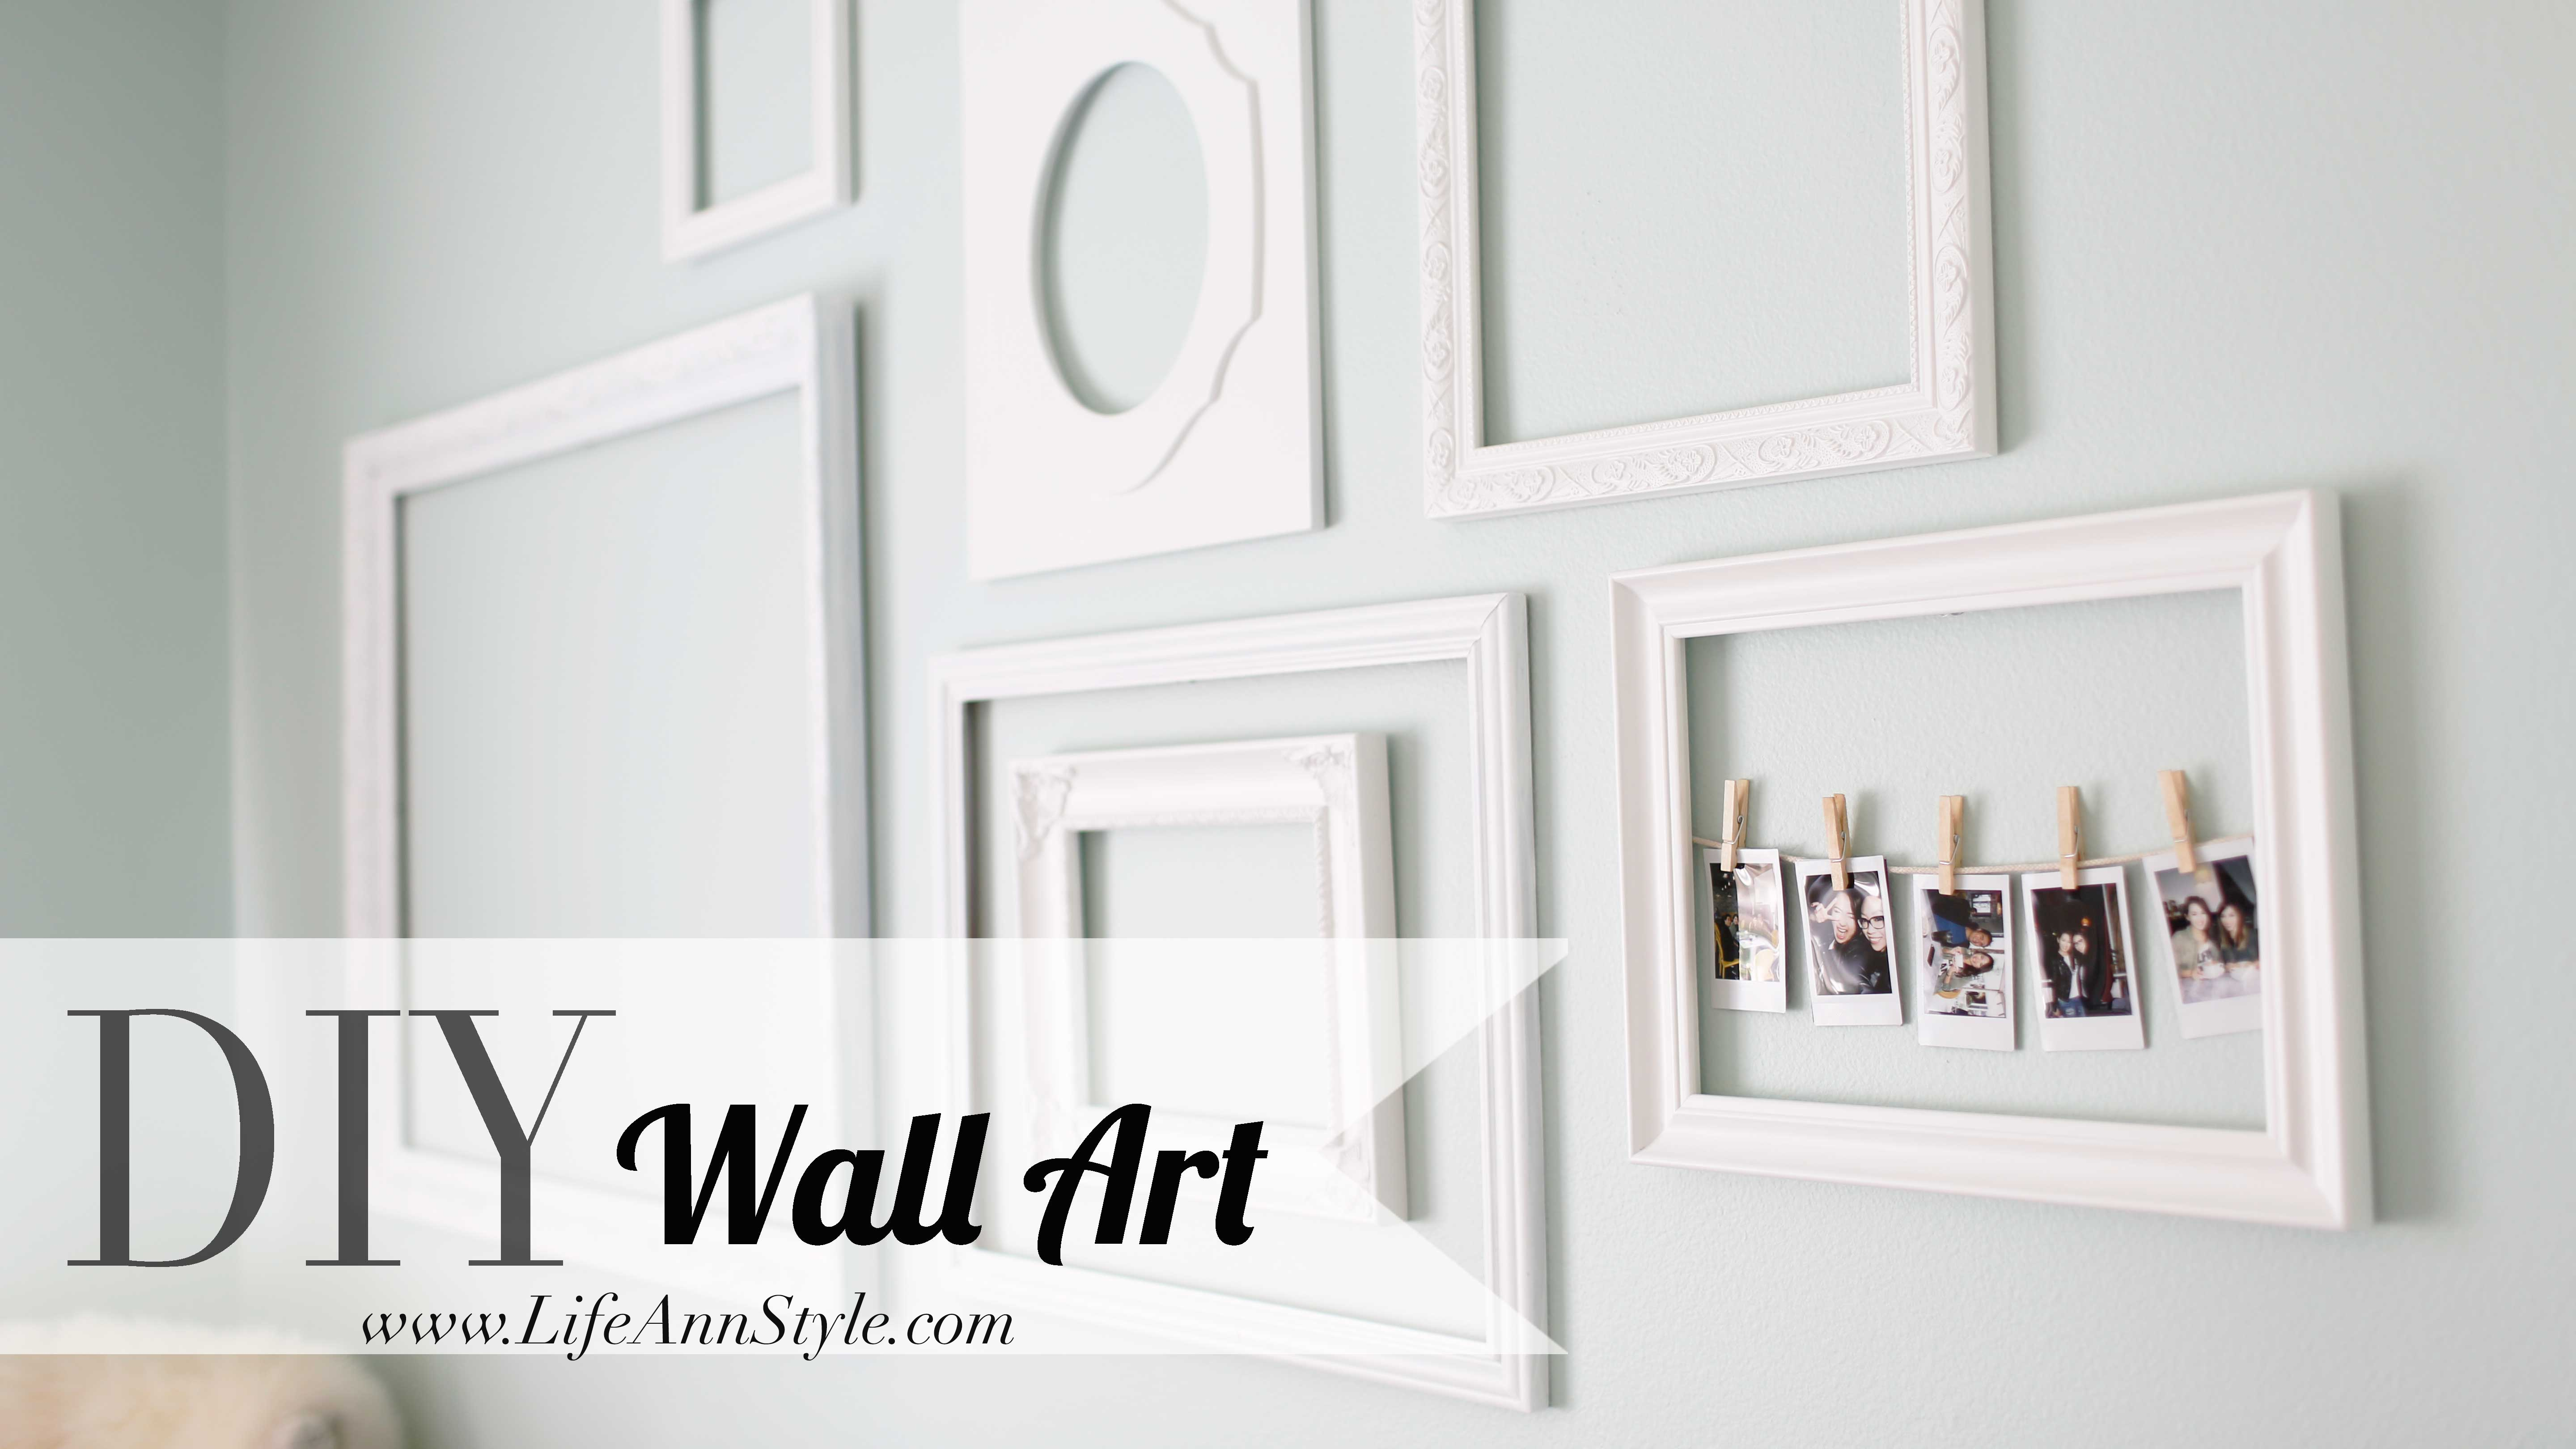 Make A Statement With Empty Picture Frames As Wall Art – Ann Le Style With Most Up To Date Wall Art Frames (View 13 of 20)